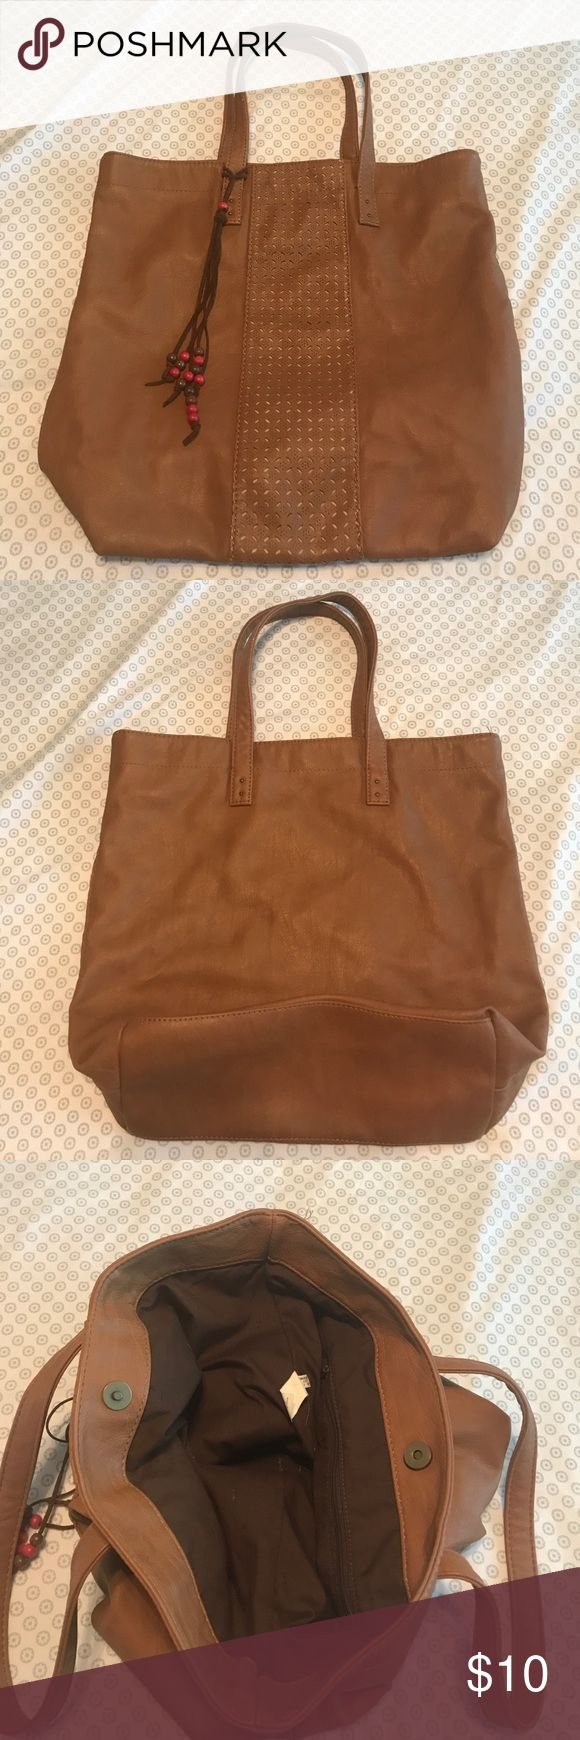 Faux Leather Tote Bag This hip tote bag will carry all your summer needs. One zip pocket on the inside. Magnetic button closure. 17x5x15 LxWxH American Eagle Outfitters Bags Totes